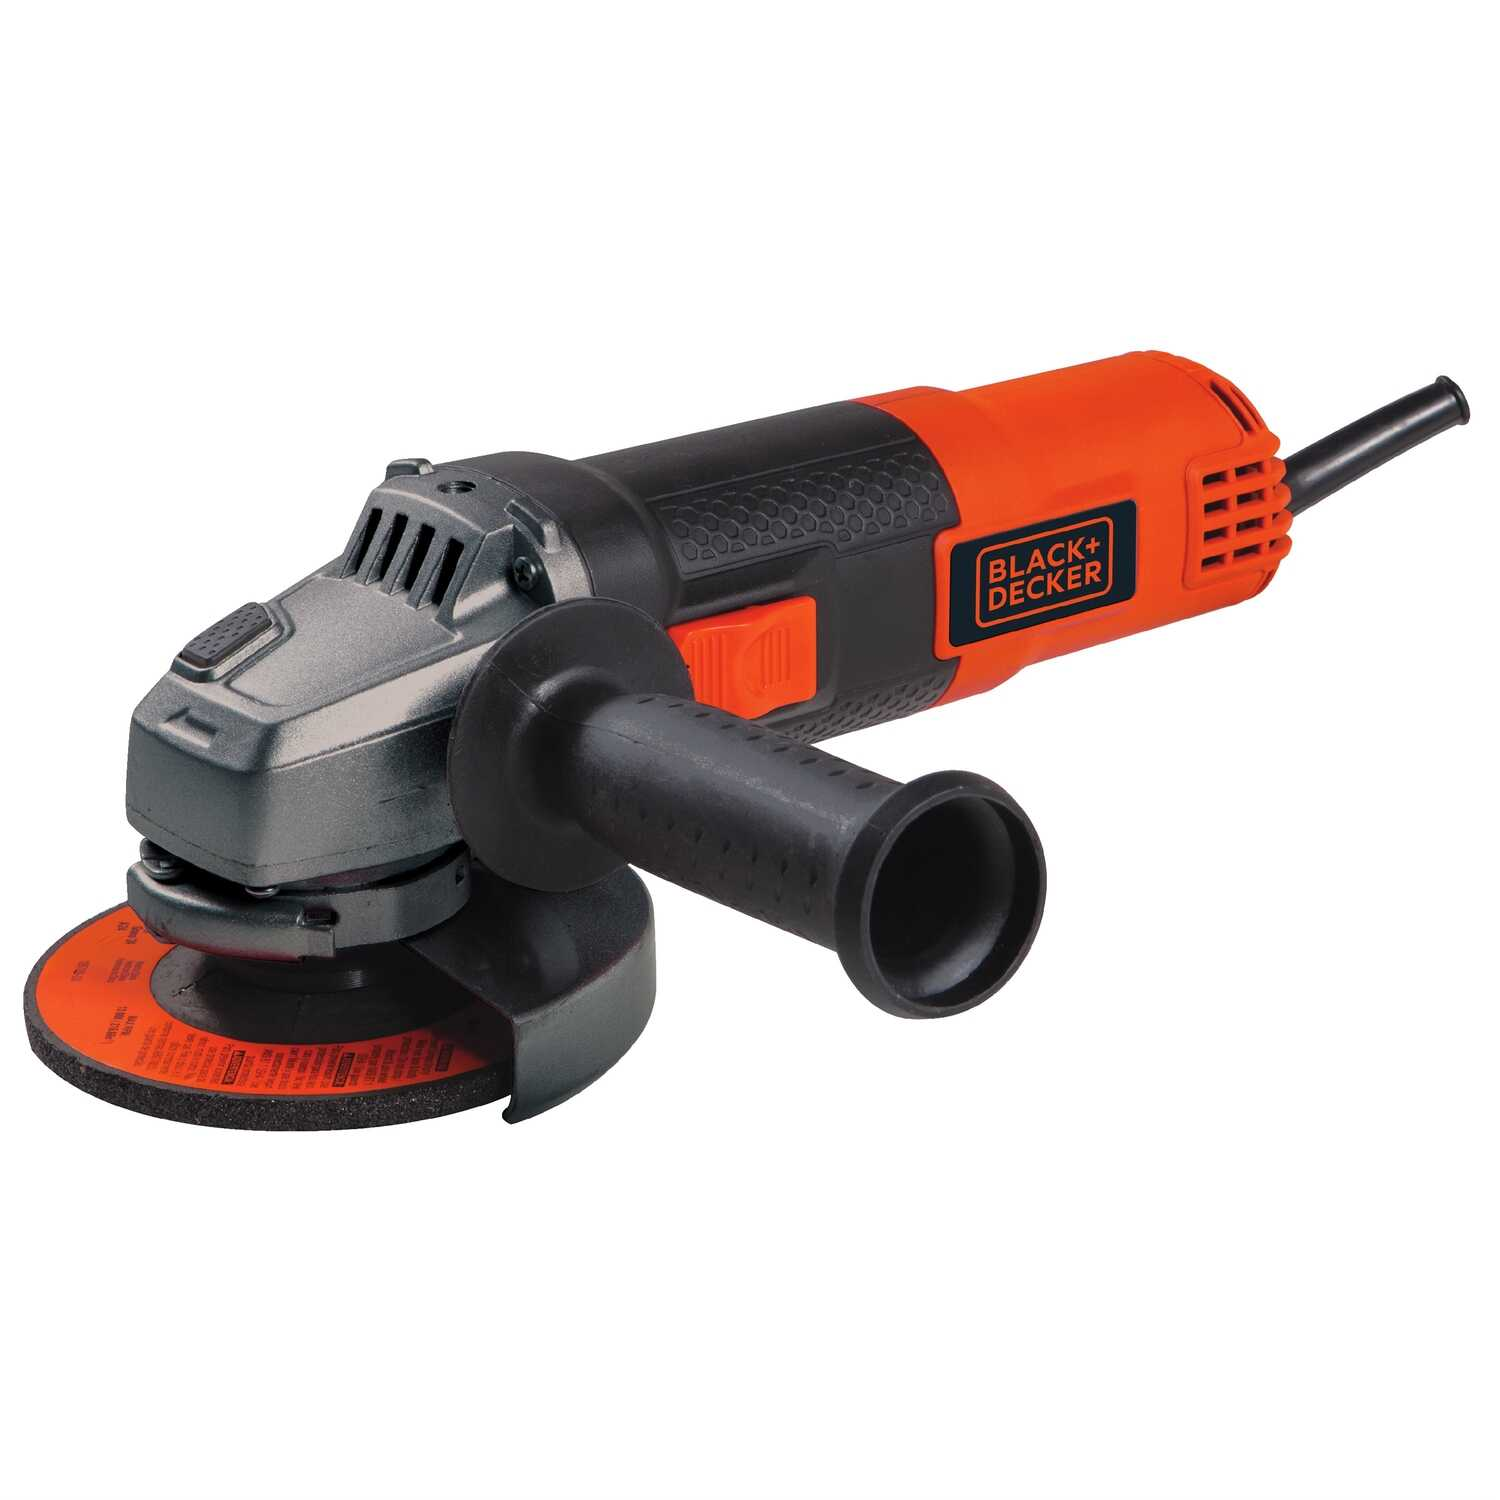 Black And Decker 6 Amps Corded Small Angle Grinder 4 1 2 In 10000